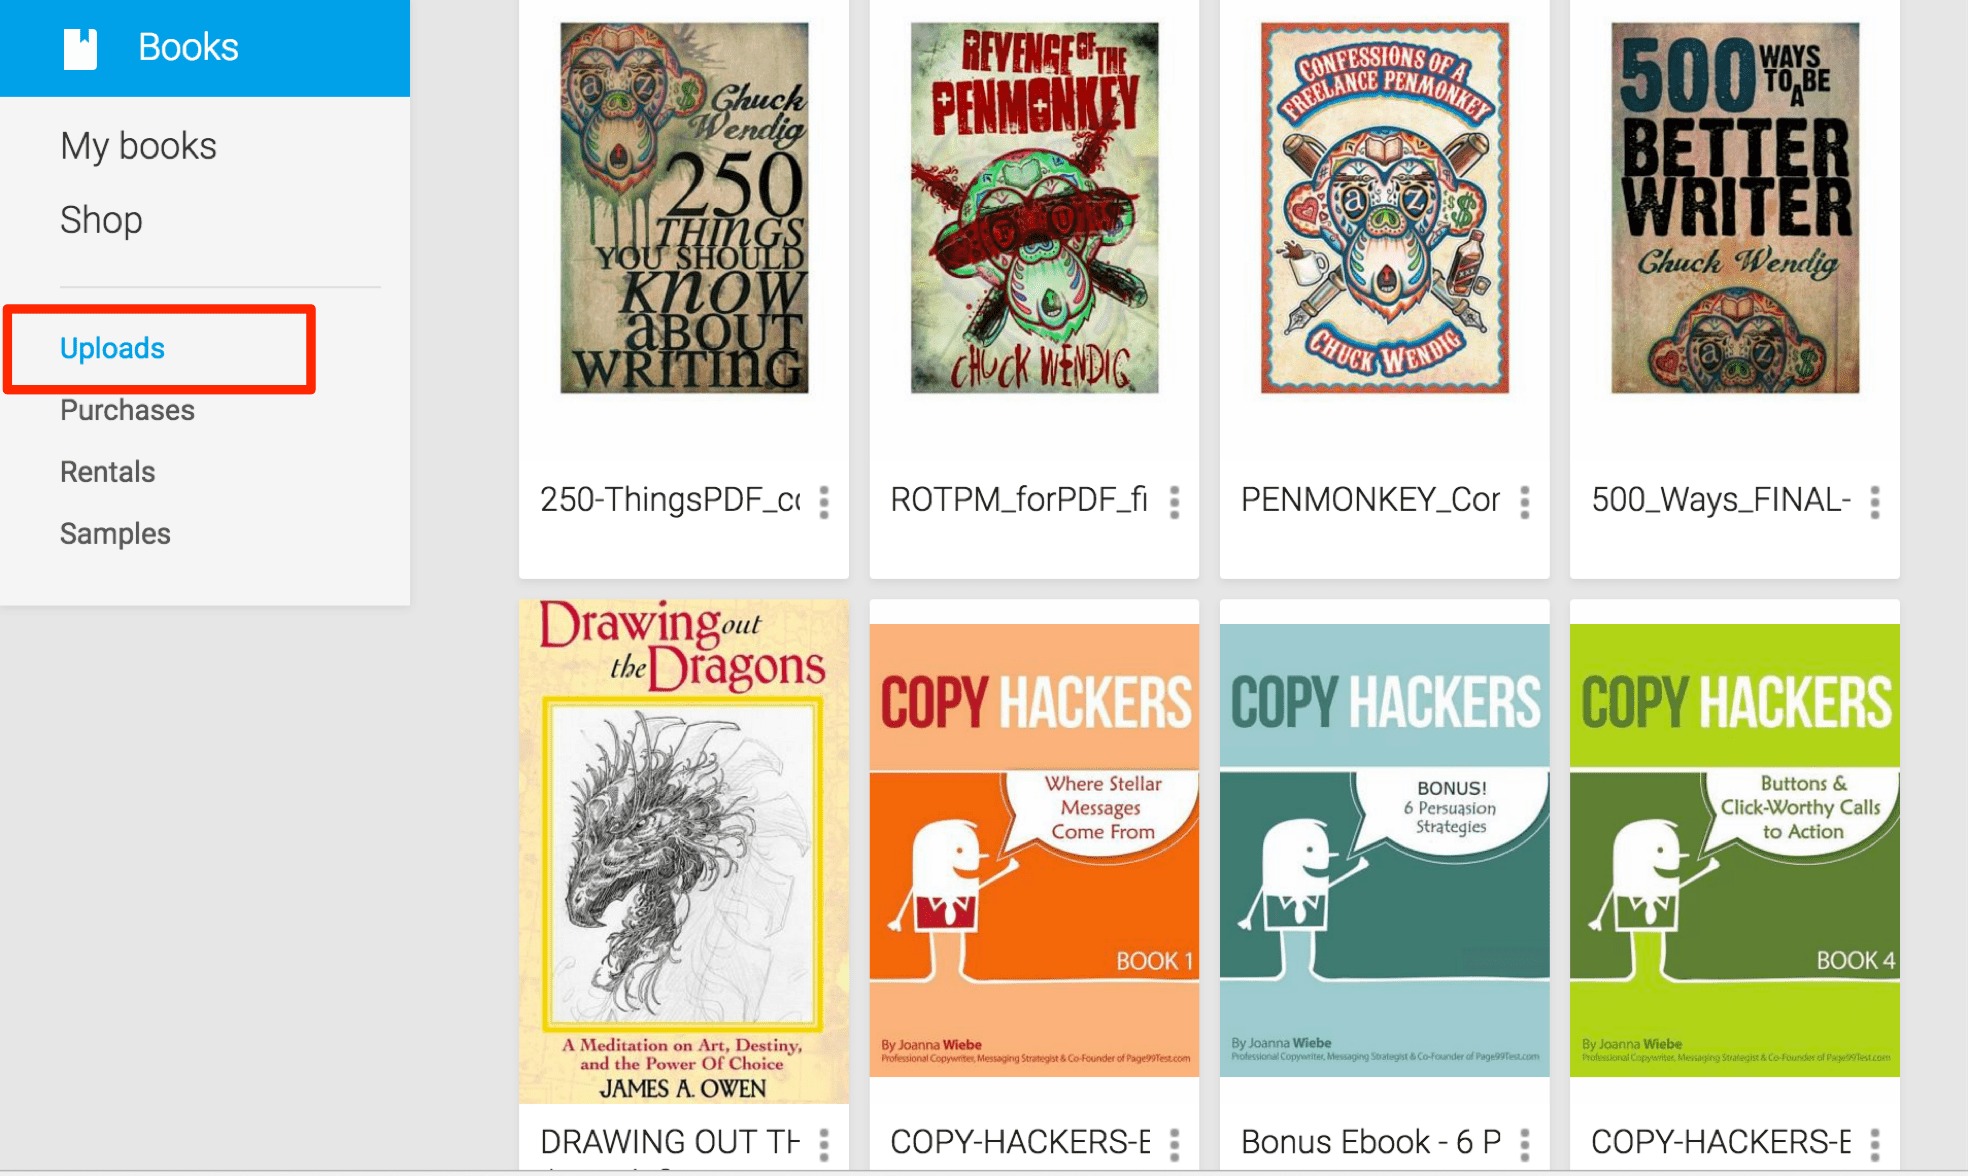 How to Upload Your Own E-Books to Google Play Books